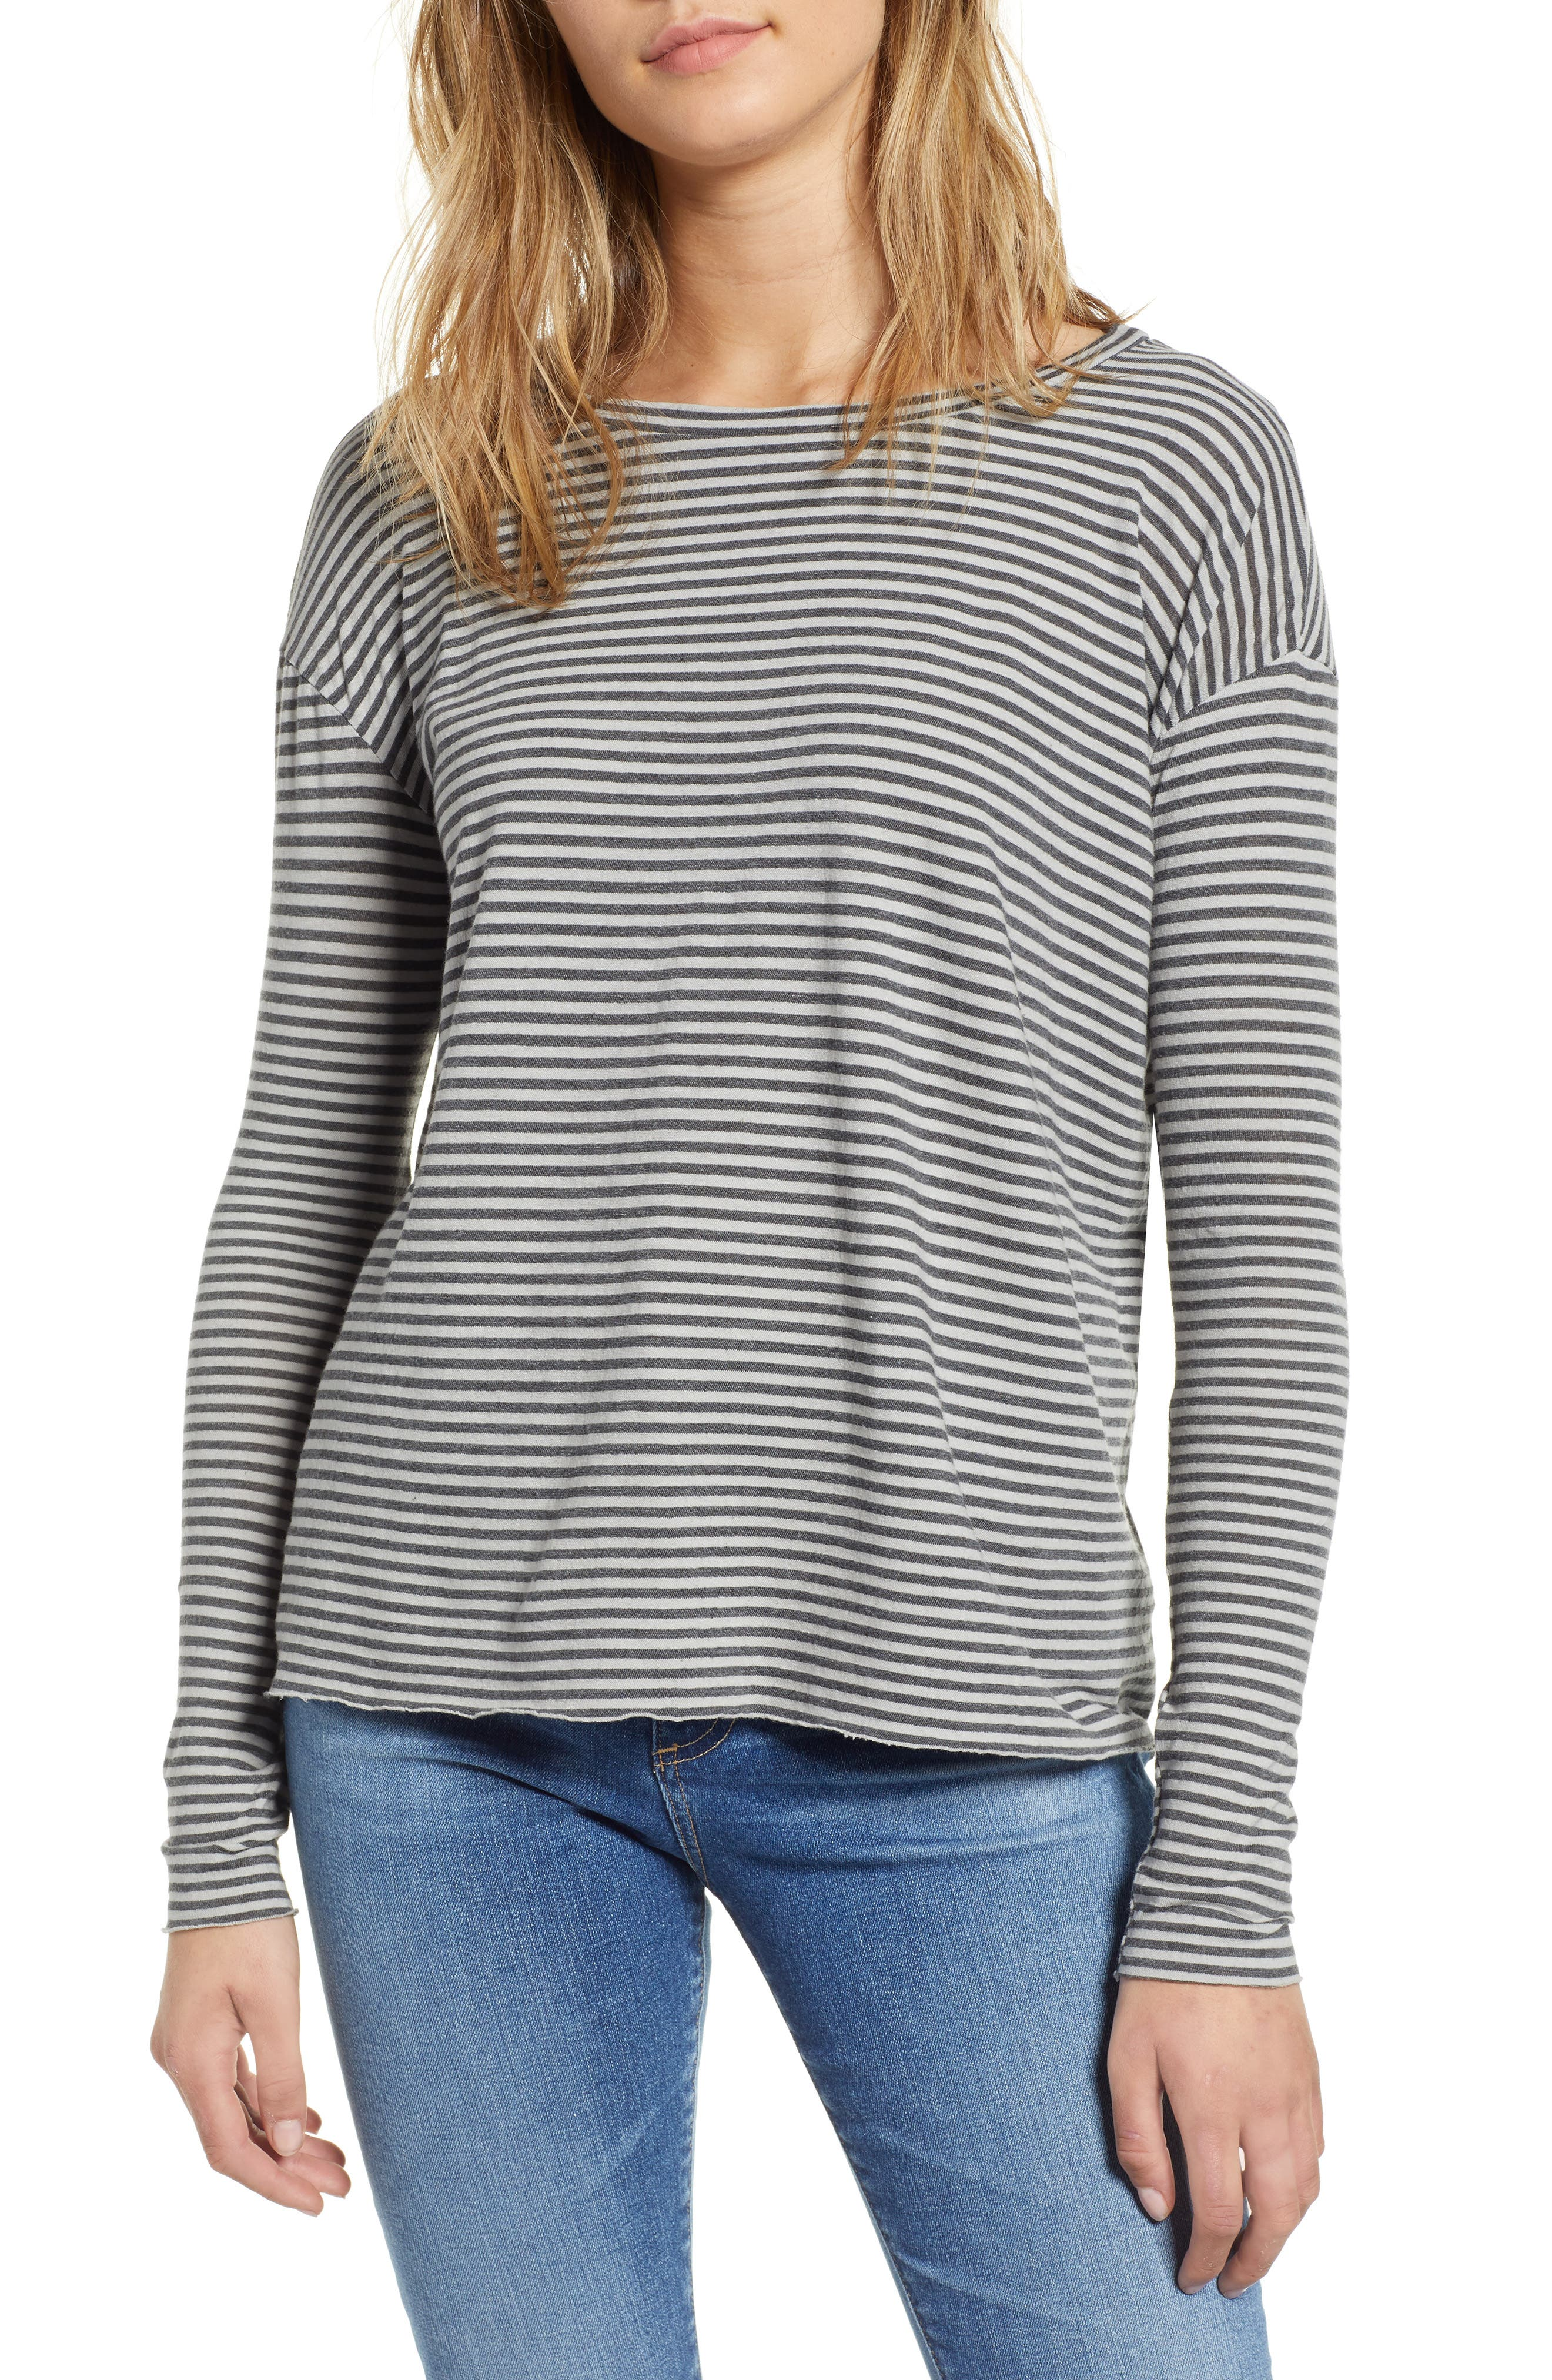 FRANK & EILEEN Tee Lab Core Long Sleeve Tee in Dime Stripe